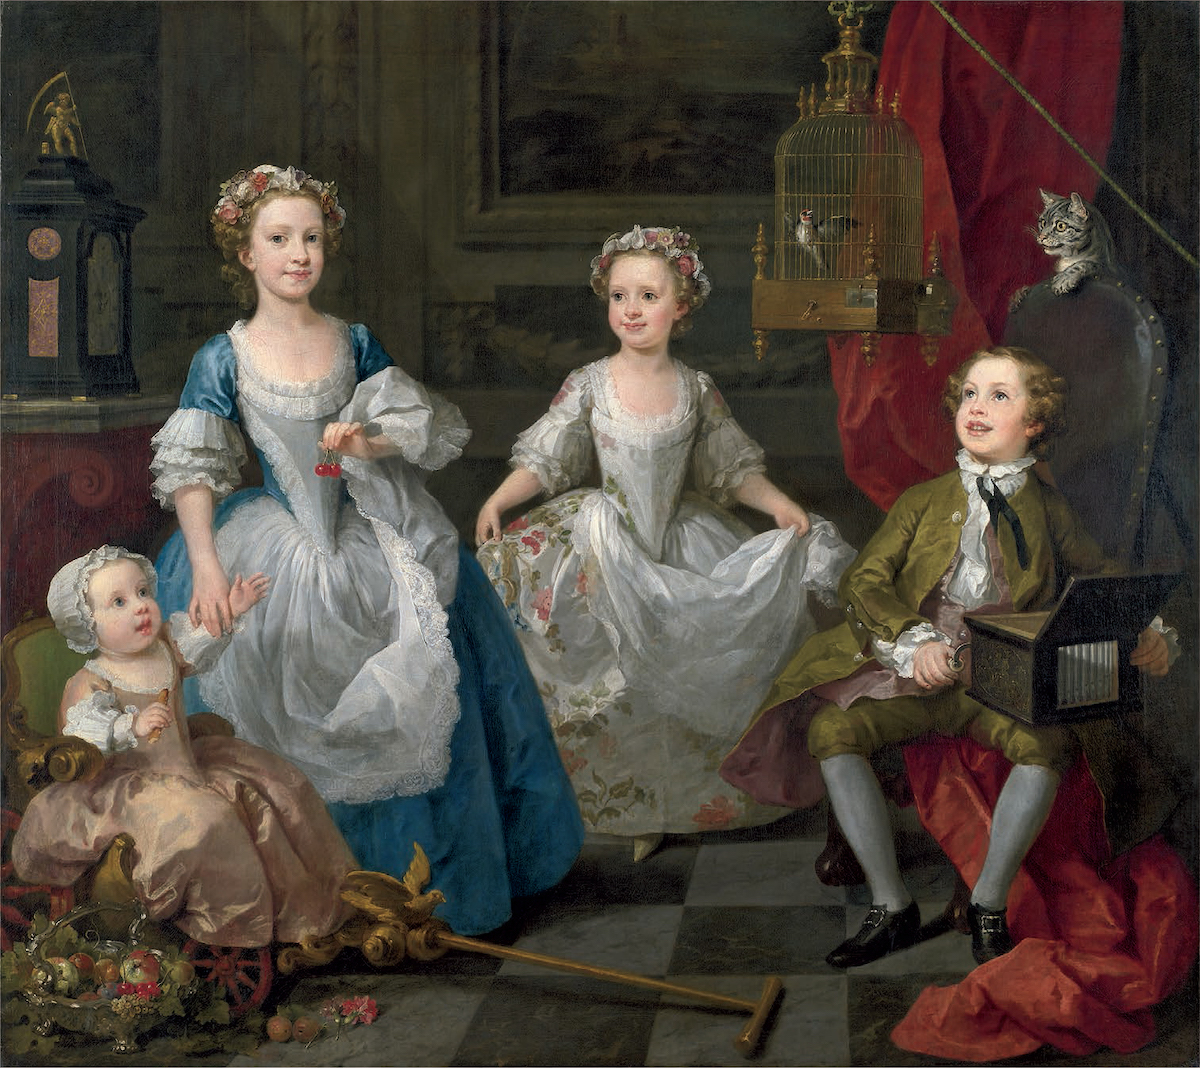 The Graham Children by William Hogarth (1742), Wikimedia Commons.